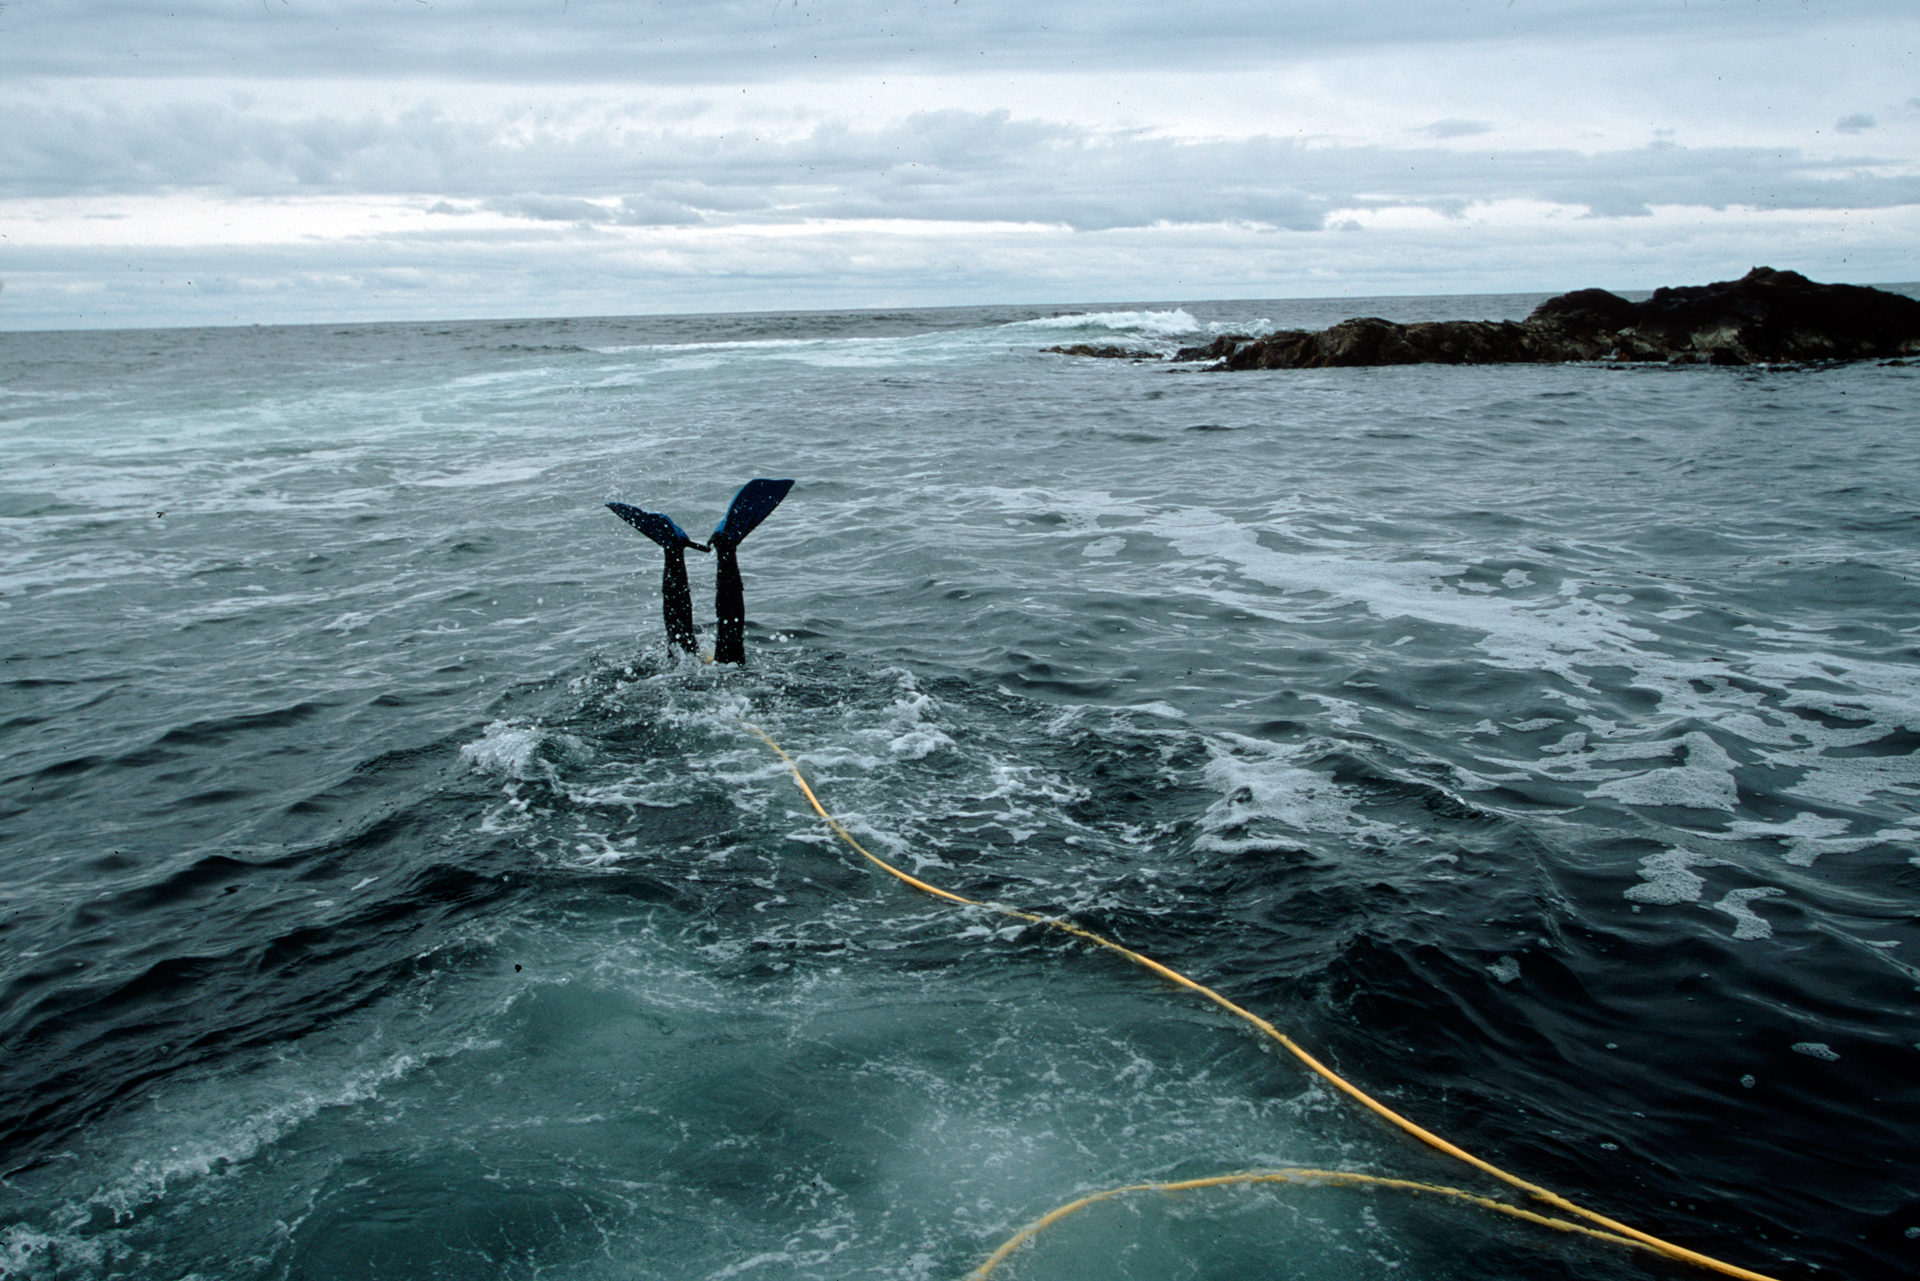 An abalone diver near Strahan on his way to harvest.  Strahan